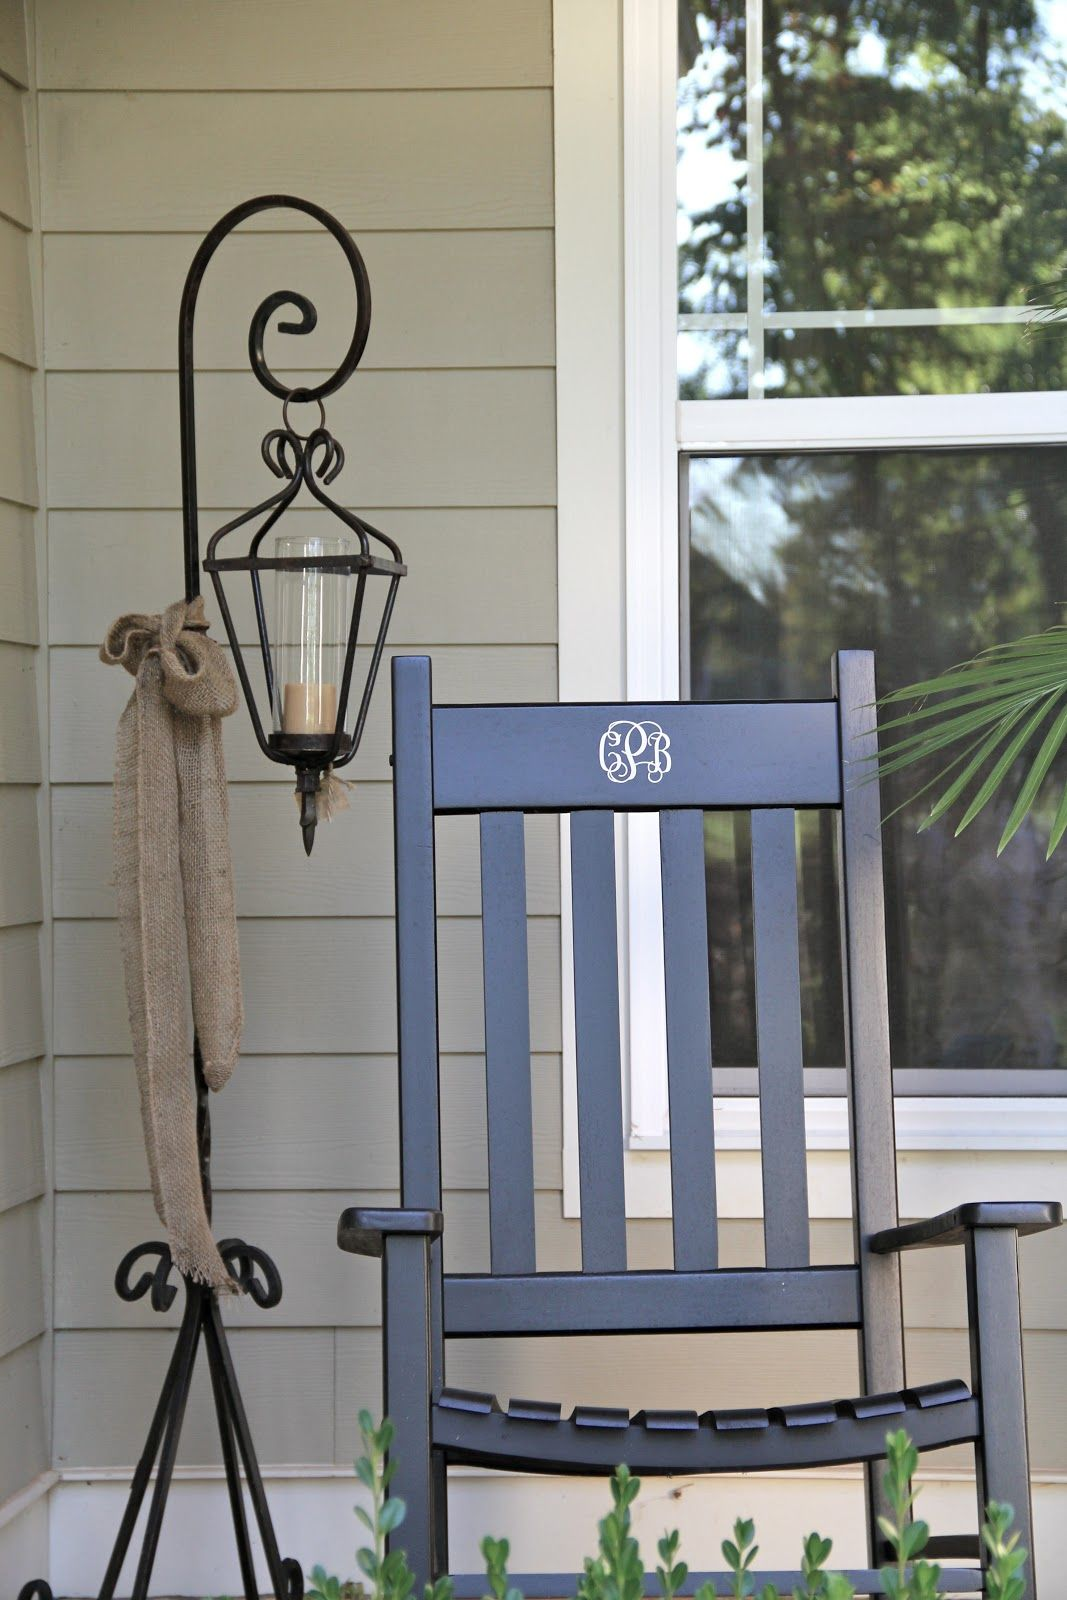 Hanging Zone Chair Meditation Posture Monogrammed Rocking 43 Lantern Love Southern Soul